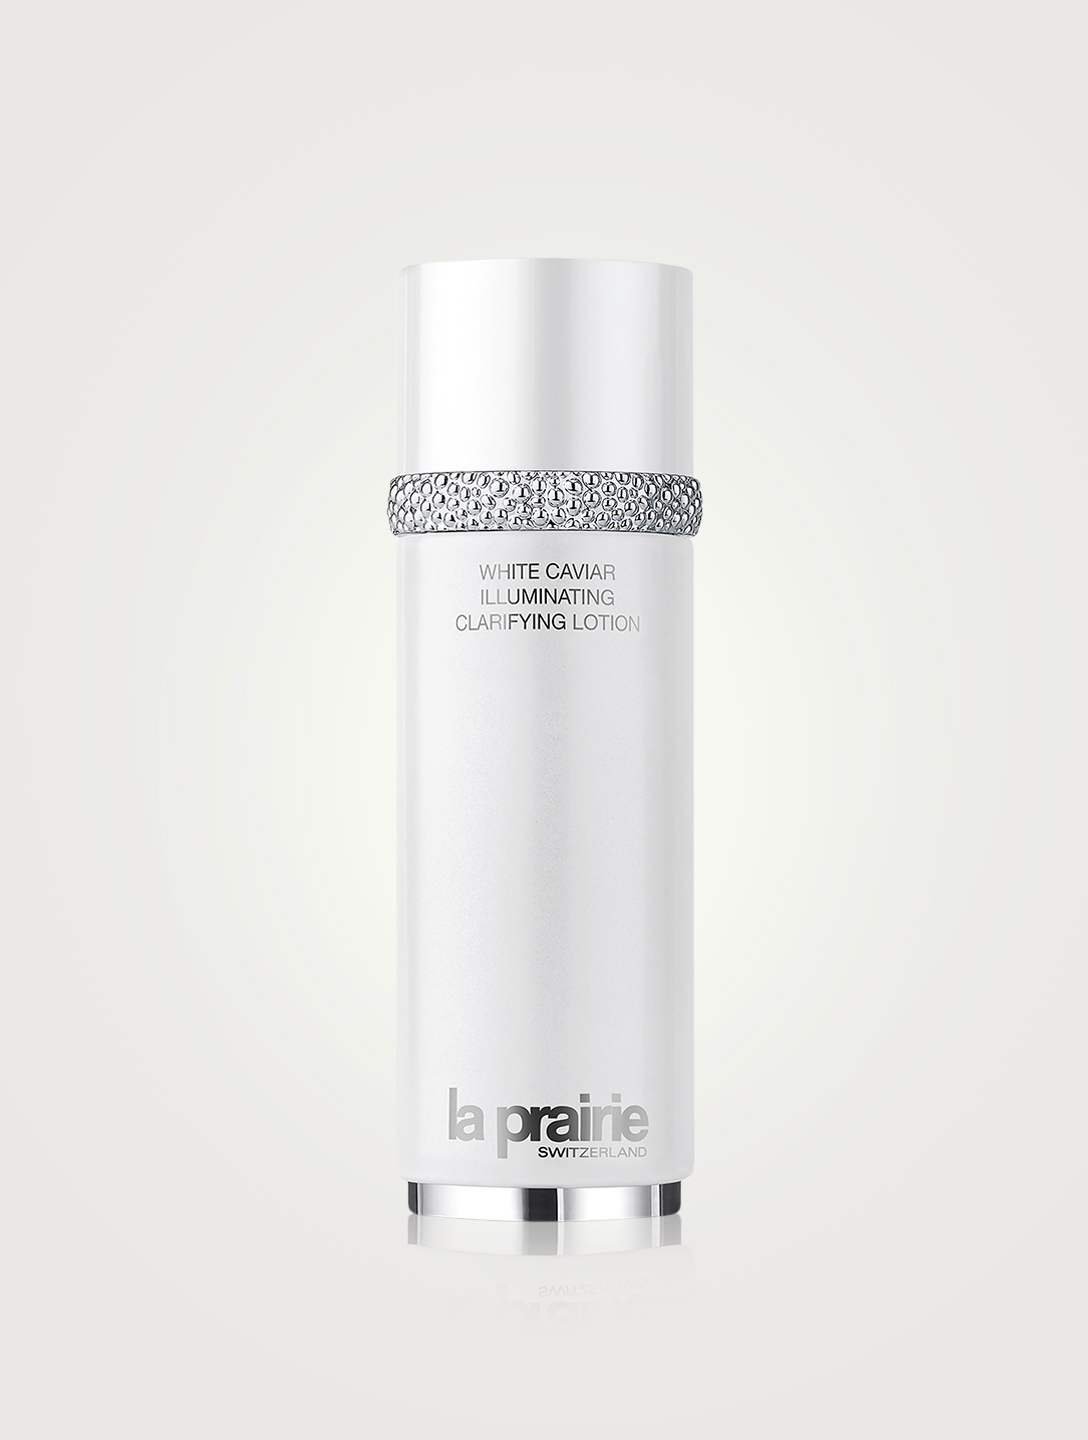 LA PRAIRIE White Caviar Illuminating Clarifying Lotion Beauty